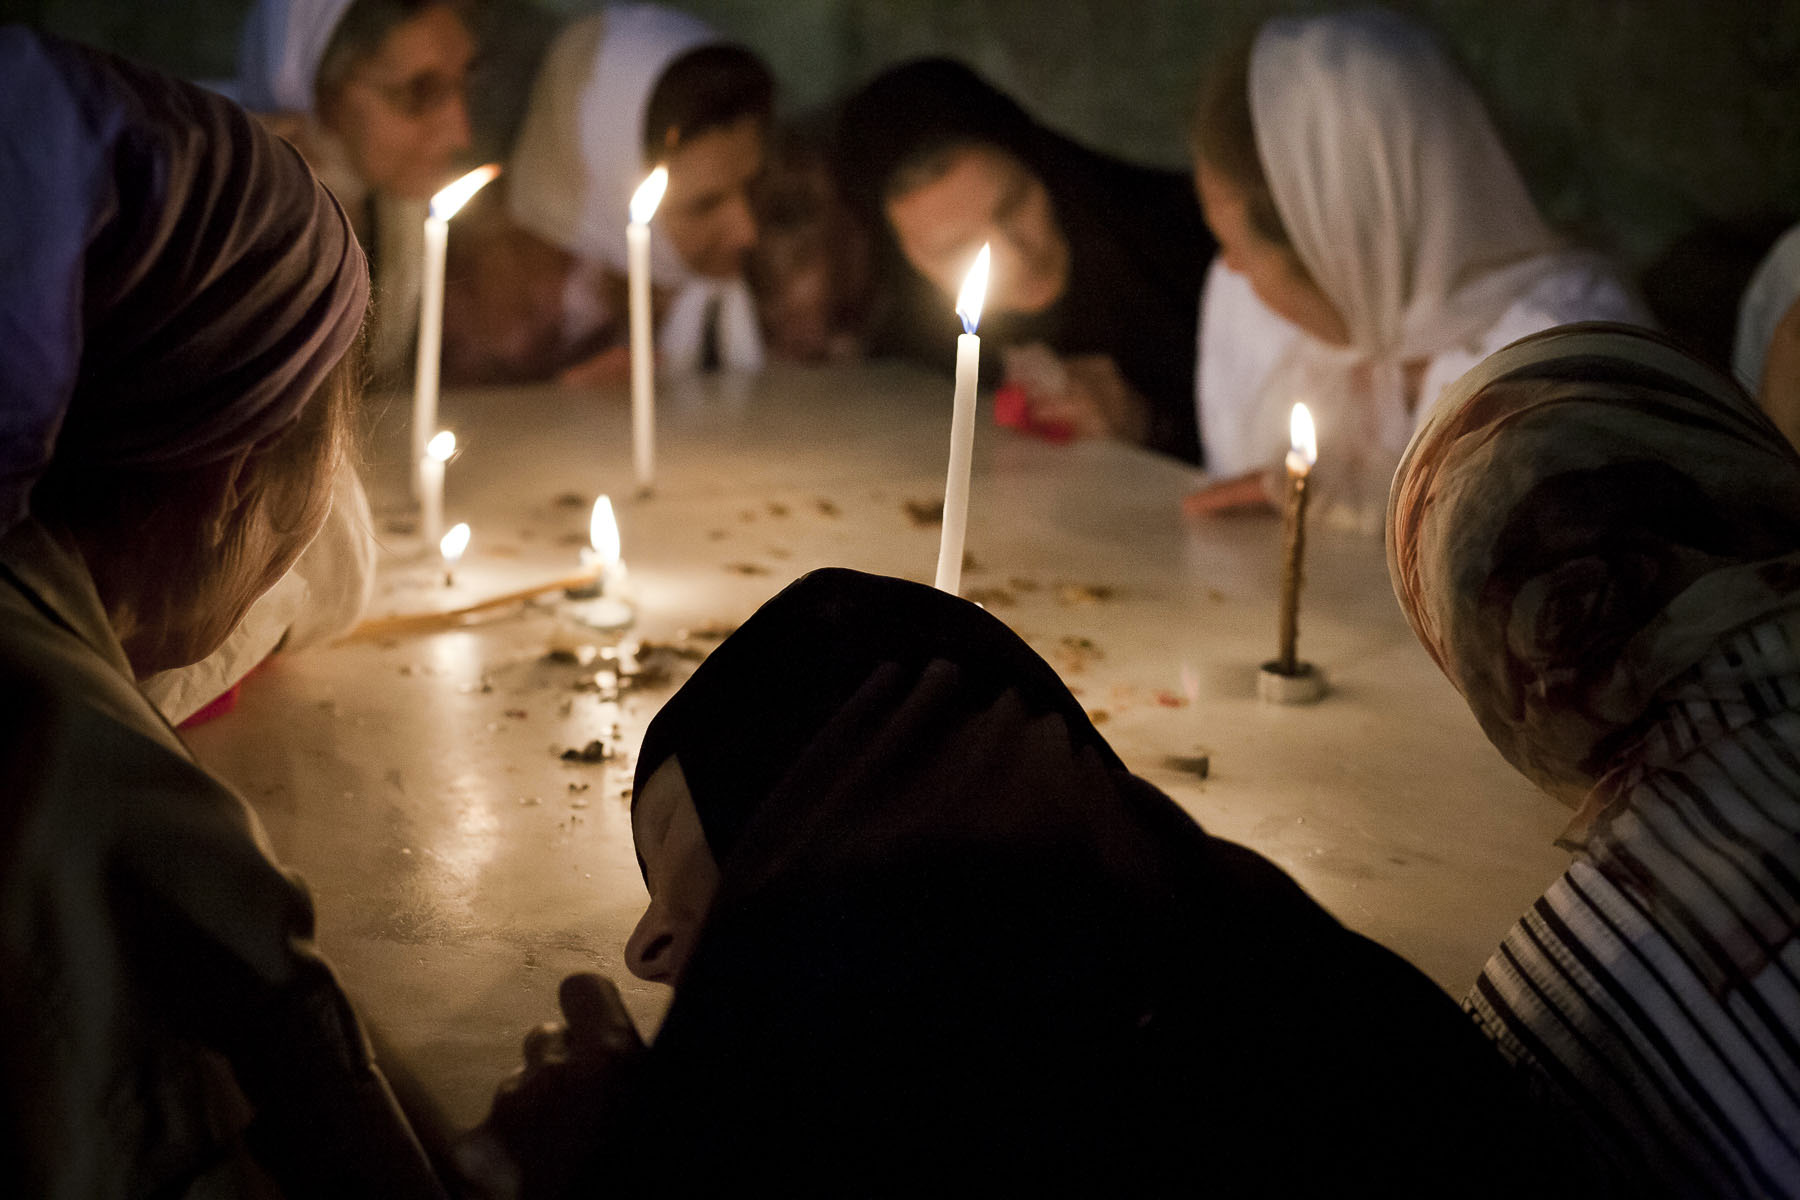 Russian Orthodox women pray in the Holy Sepulchre on Easter Day in April 2009